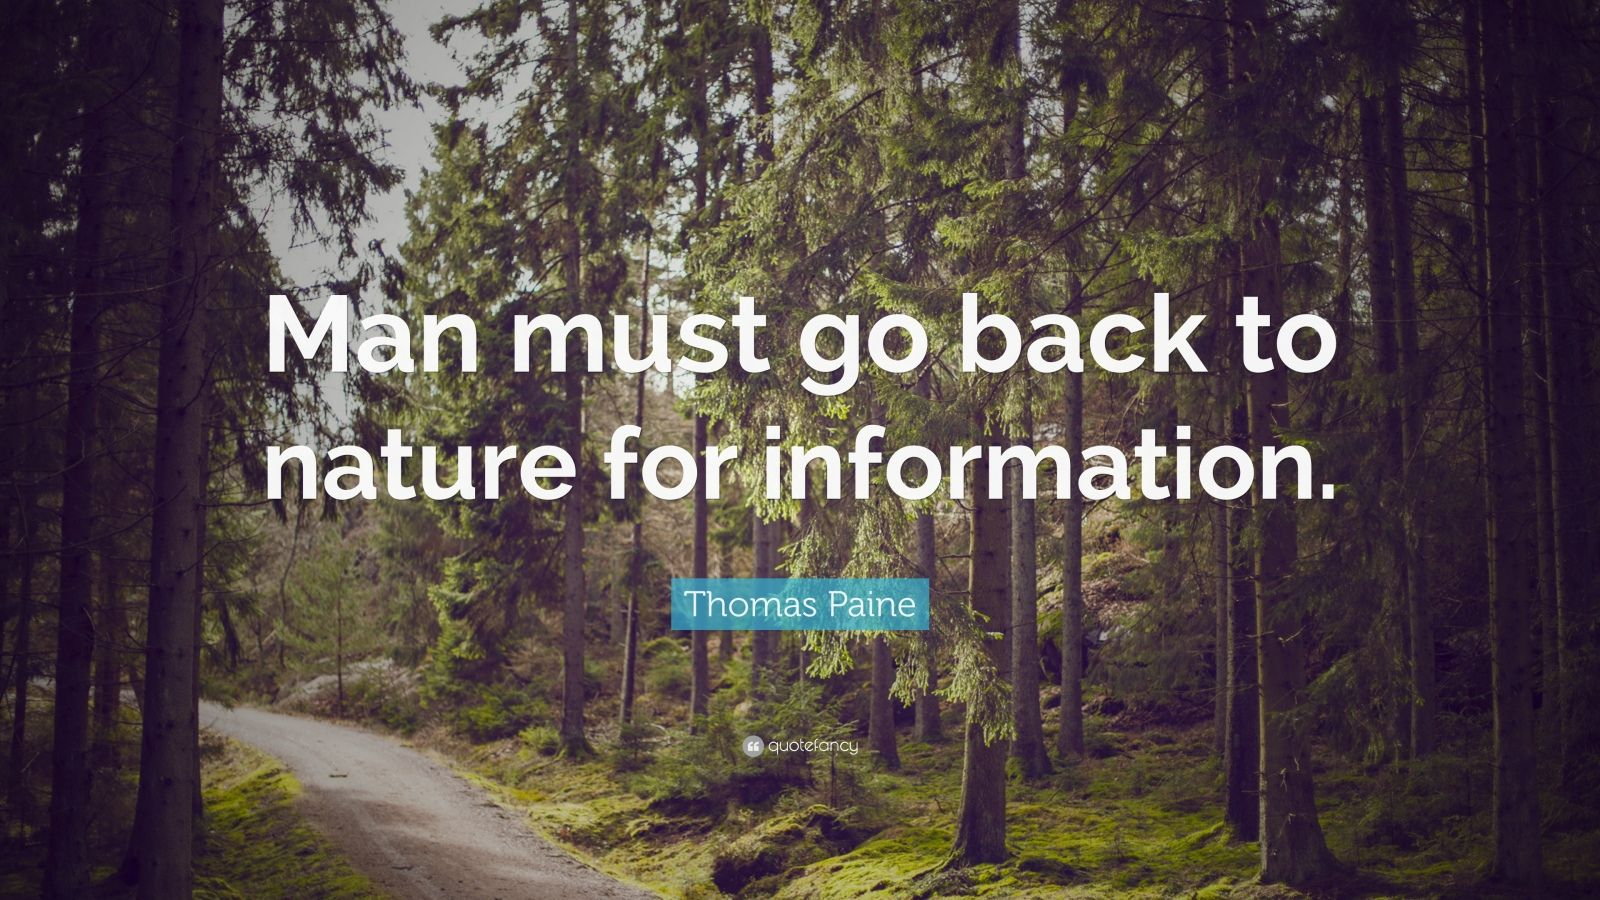 Desktop Wallpaper Motivational Quotes Thomas Paine Quote Man Must Go Back To Nature For